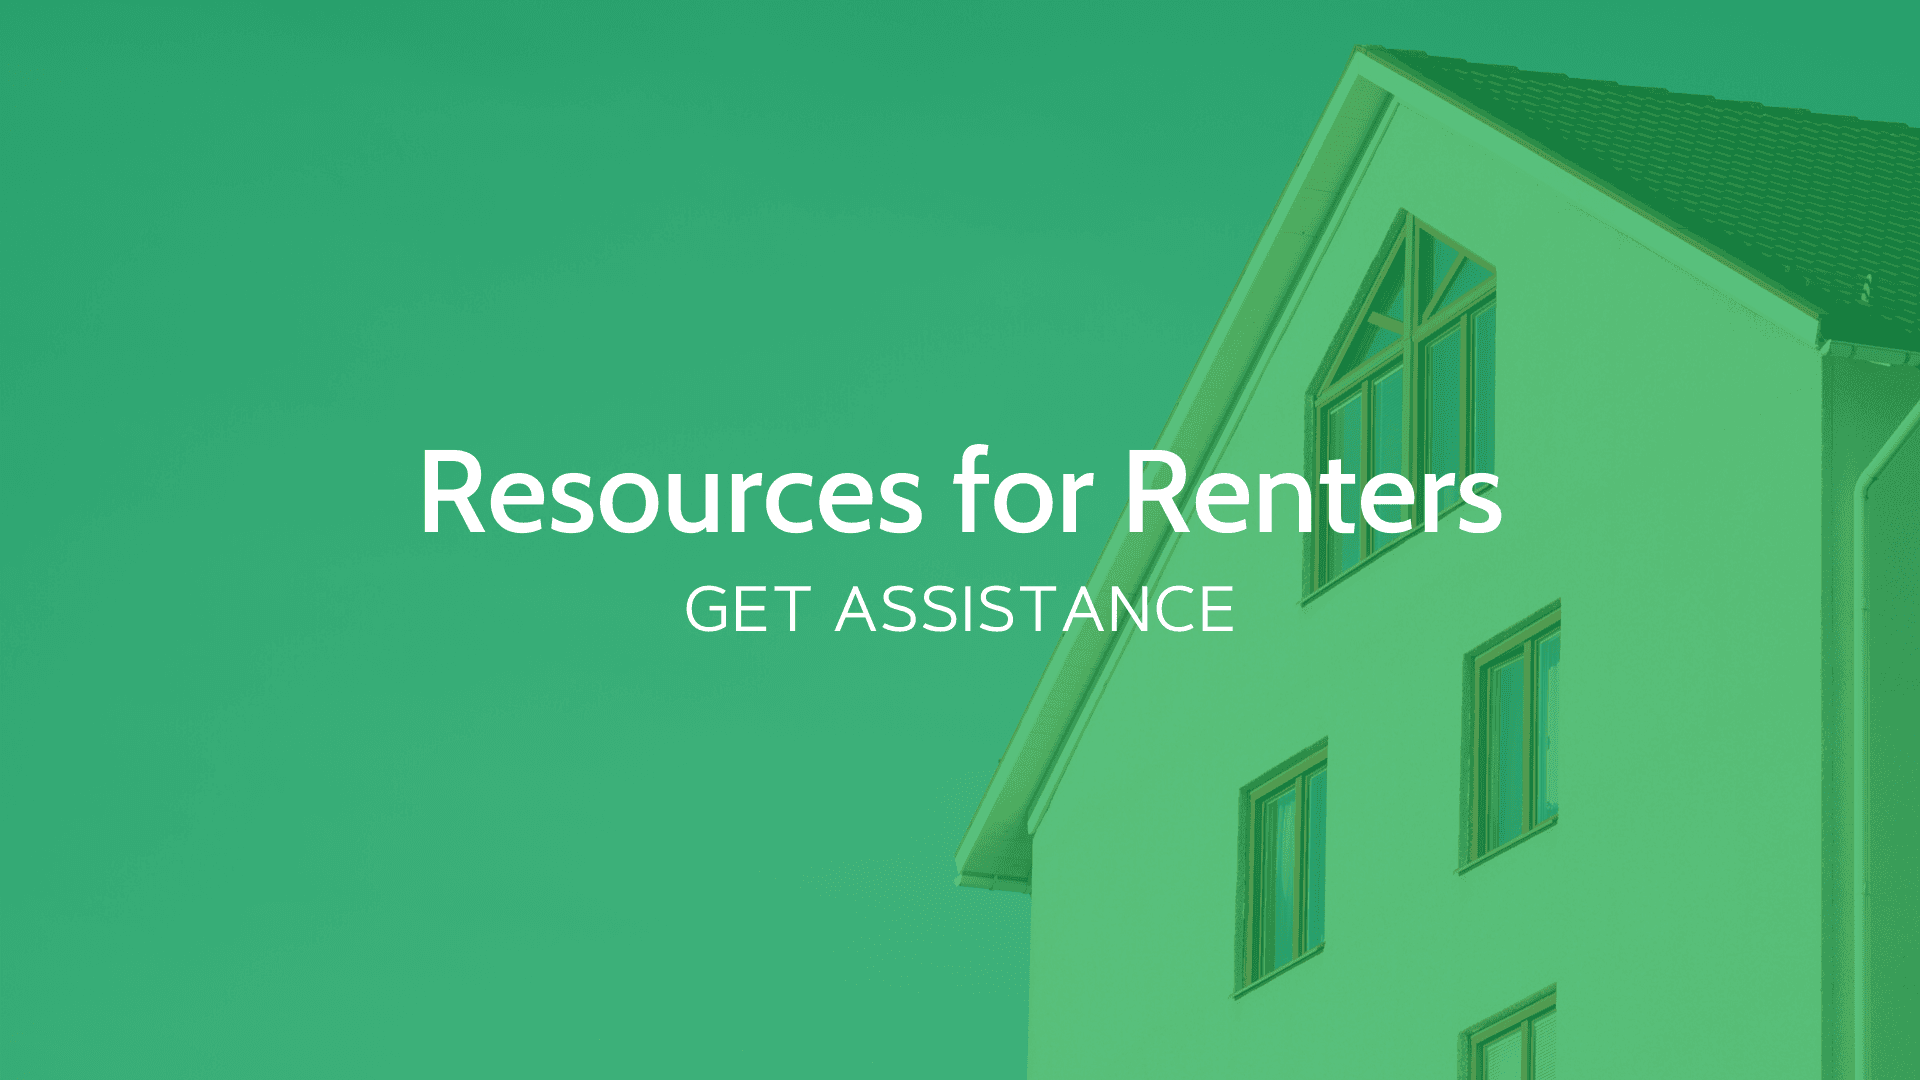 Resources for Renters